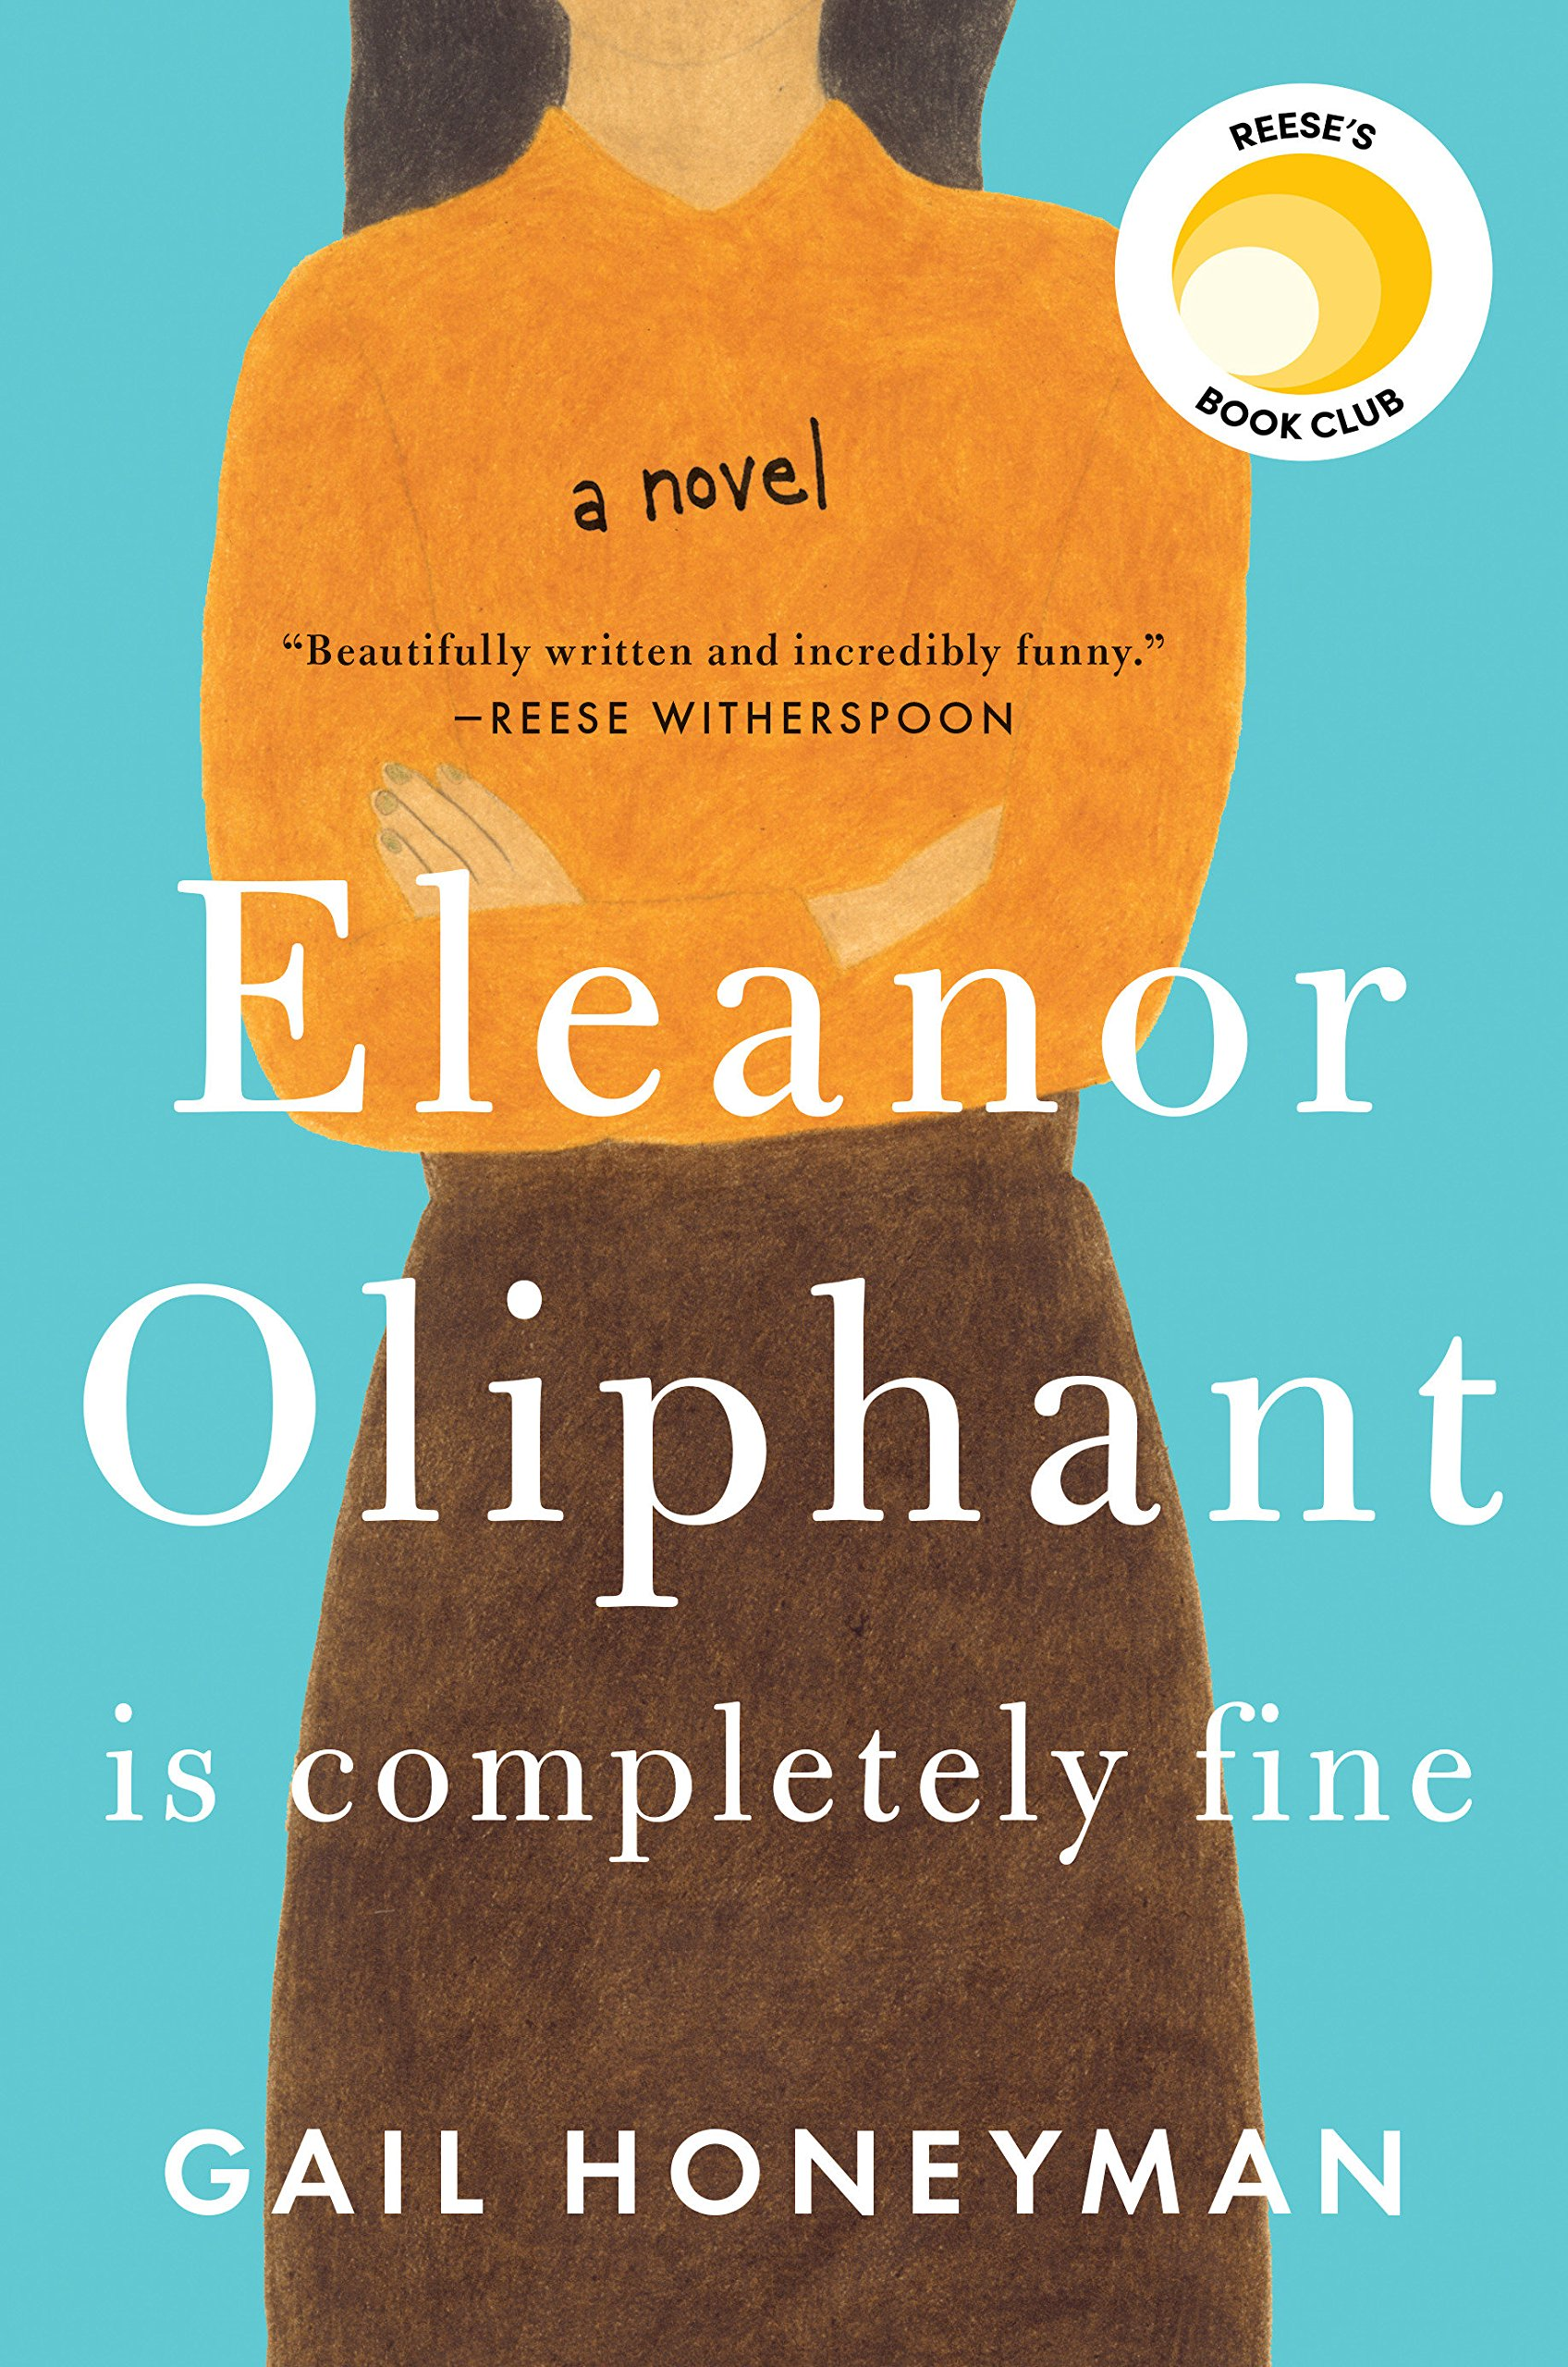 Eleanor Oliphant Is Completely Fine: A Novel: Honeyman, Gail:  9780735220683: Amazon.com: Books